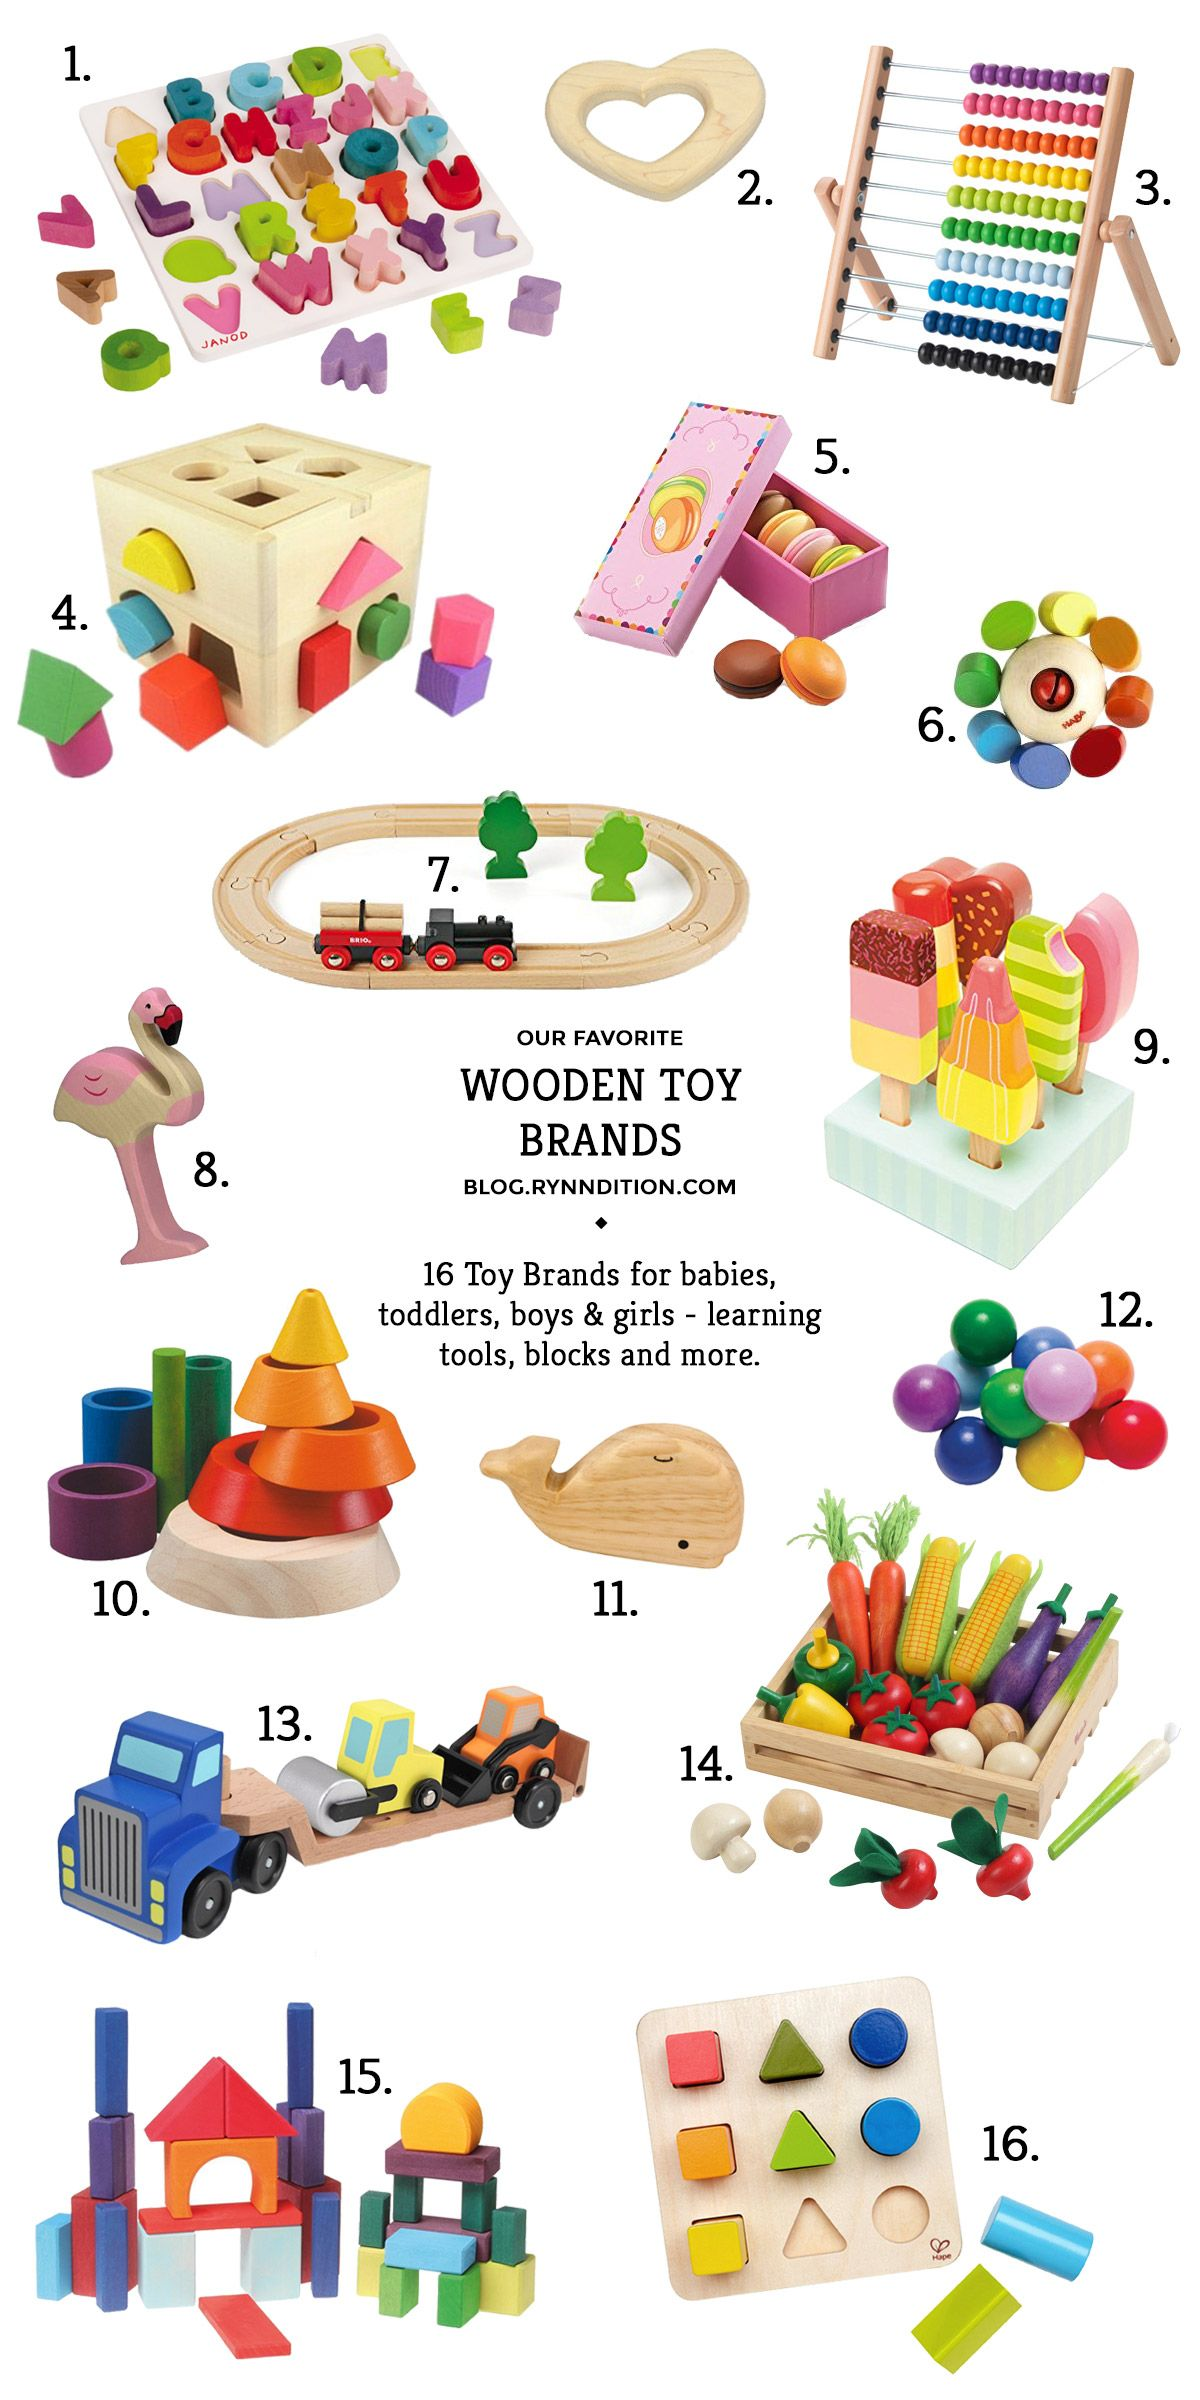 Manhattan Toy Named Among Favorite Wooden Brands For Gift Ing This Holiday